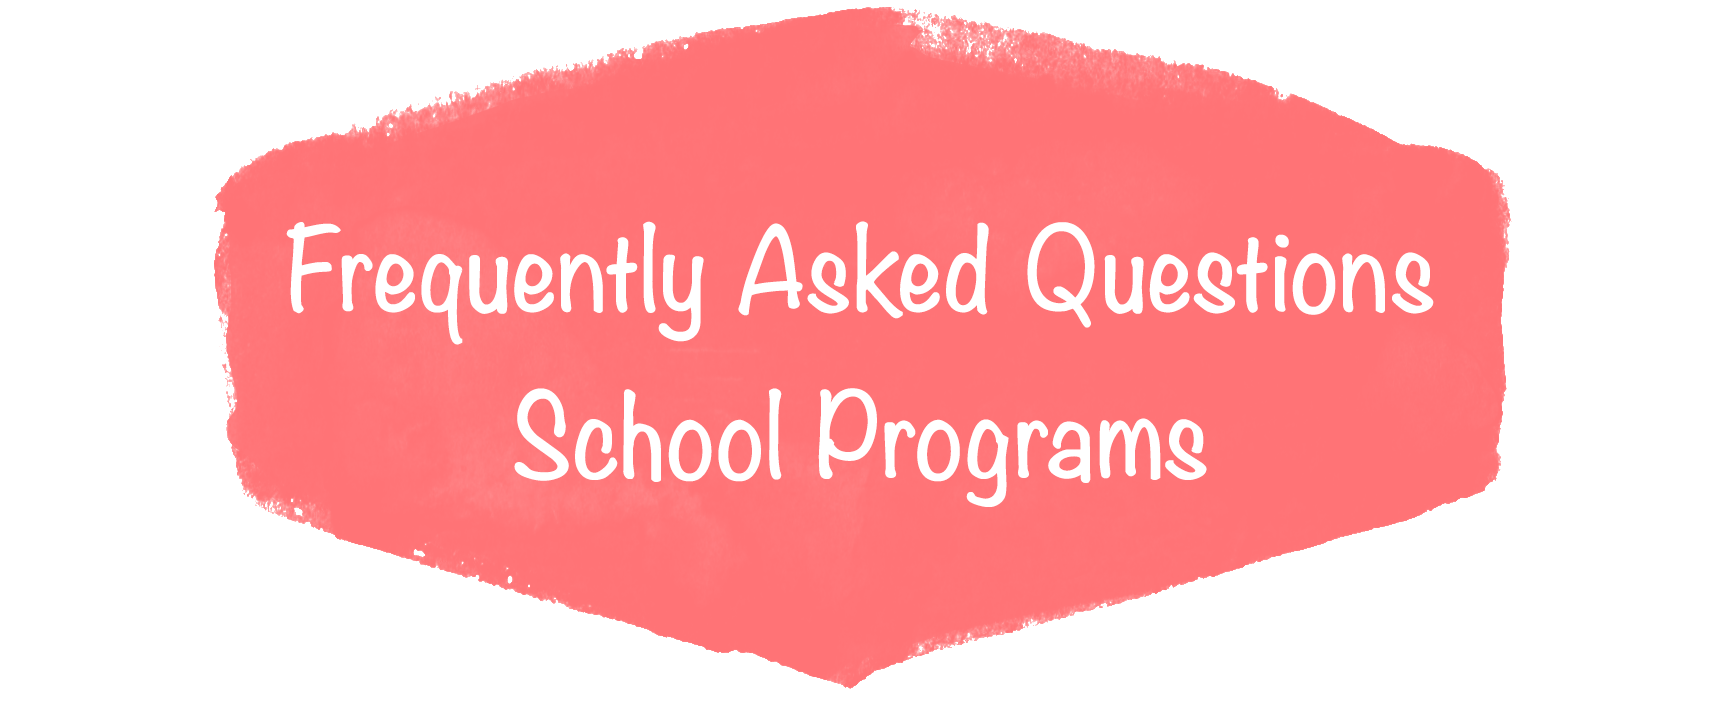 Frequently-Asked-Questions-School-program.png